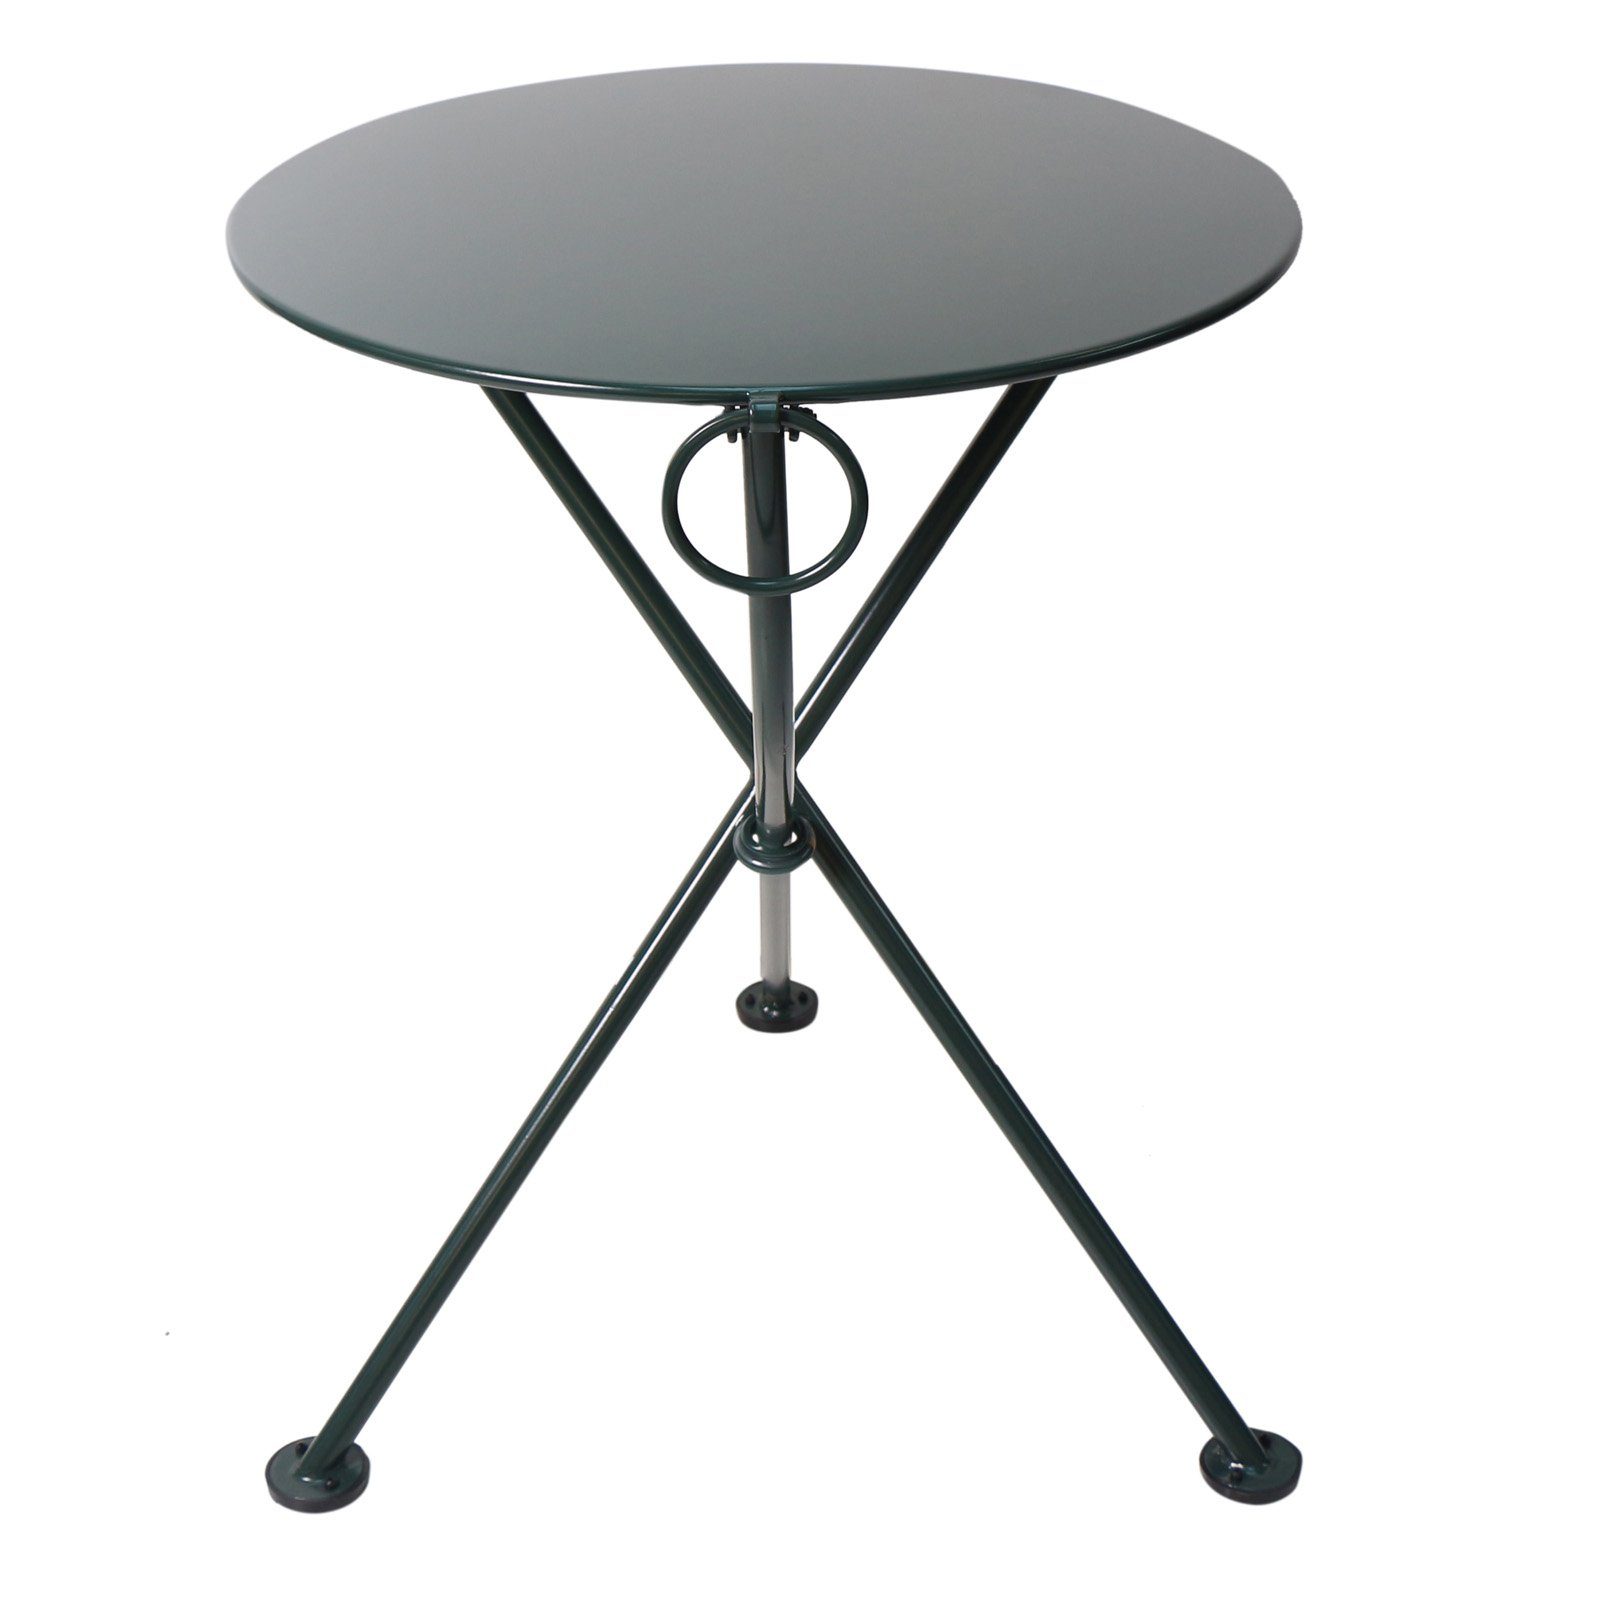 Furniture Designhouse Round European Cafe 3-Leg Folding Bistro Table - 28 in.